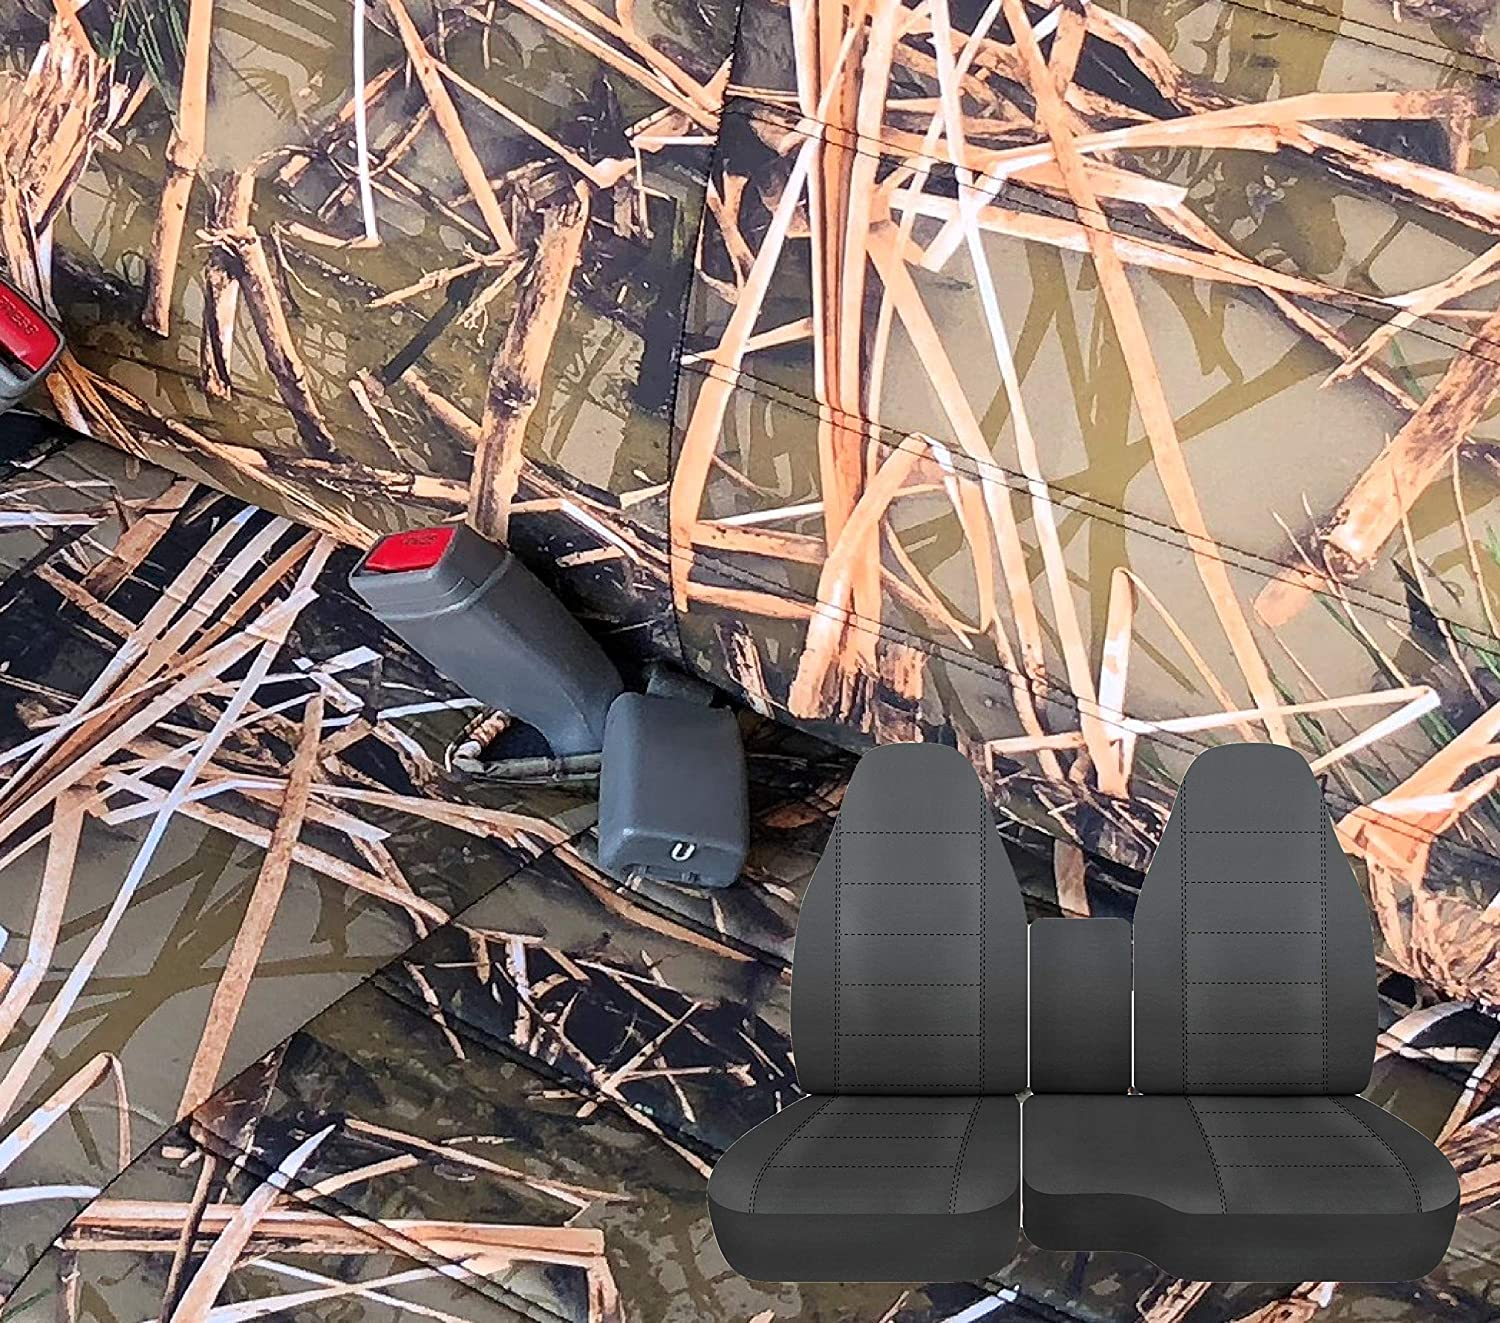 RealSeatCovers A78 Regular Cab RCab 60/40 Split Bench Seat Cover Molded Headrest for Ford Ranger 1998-2003 (1999, Muddy Water Camo)